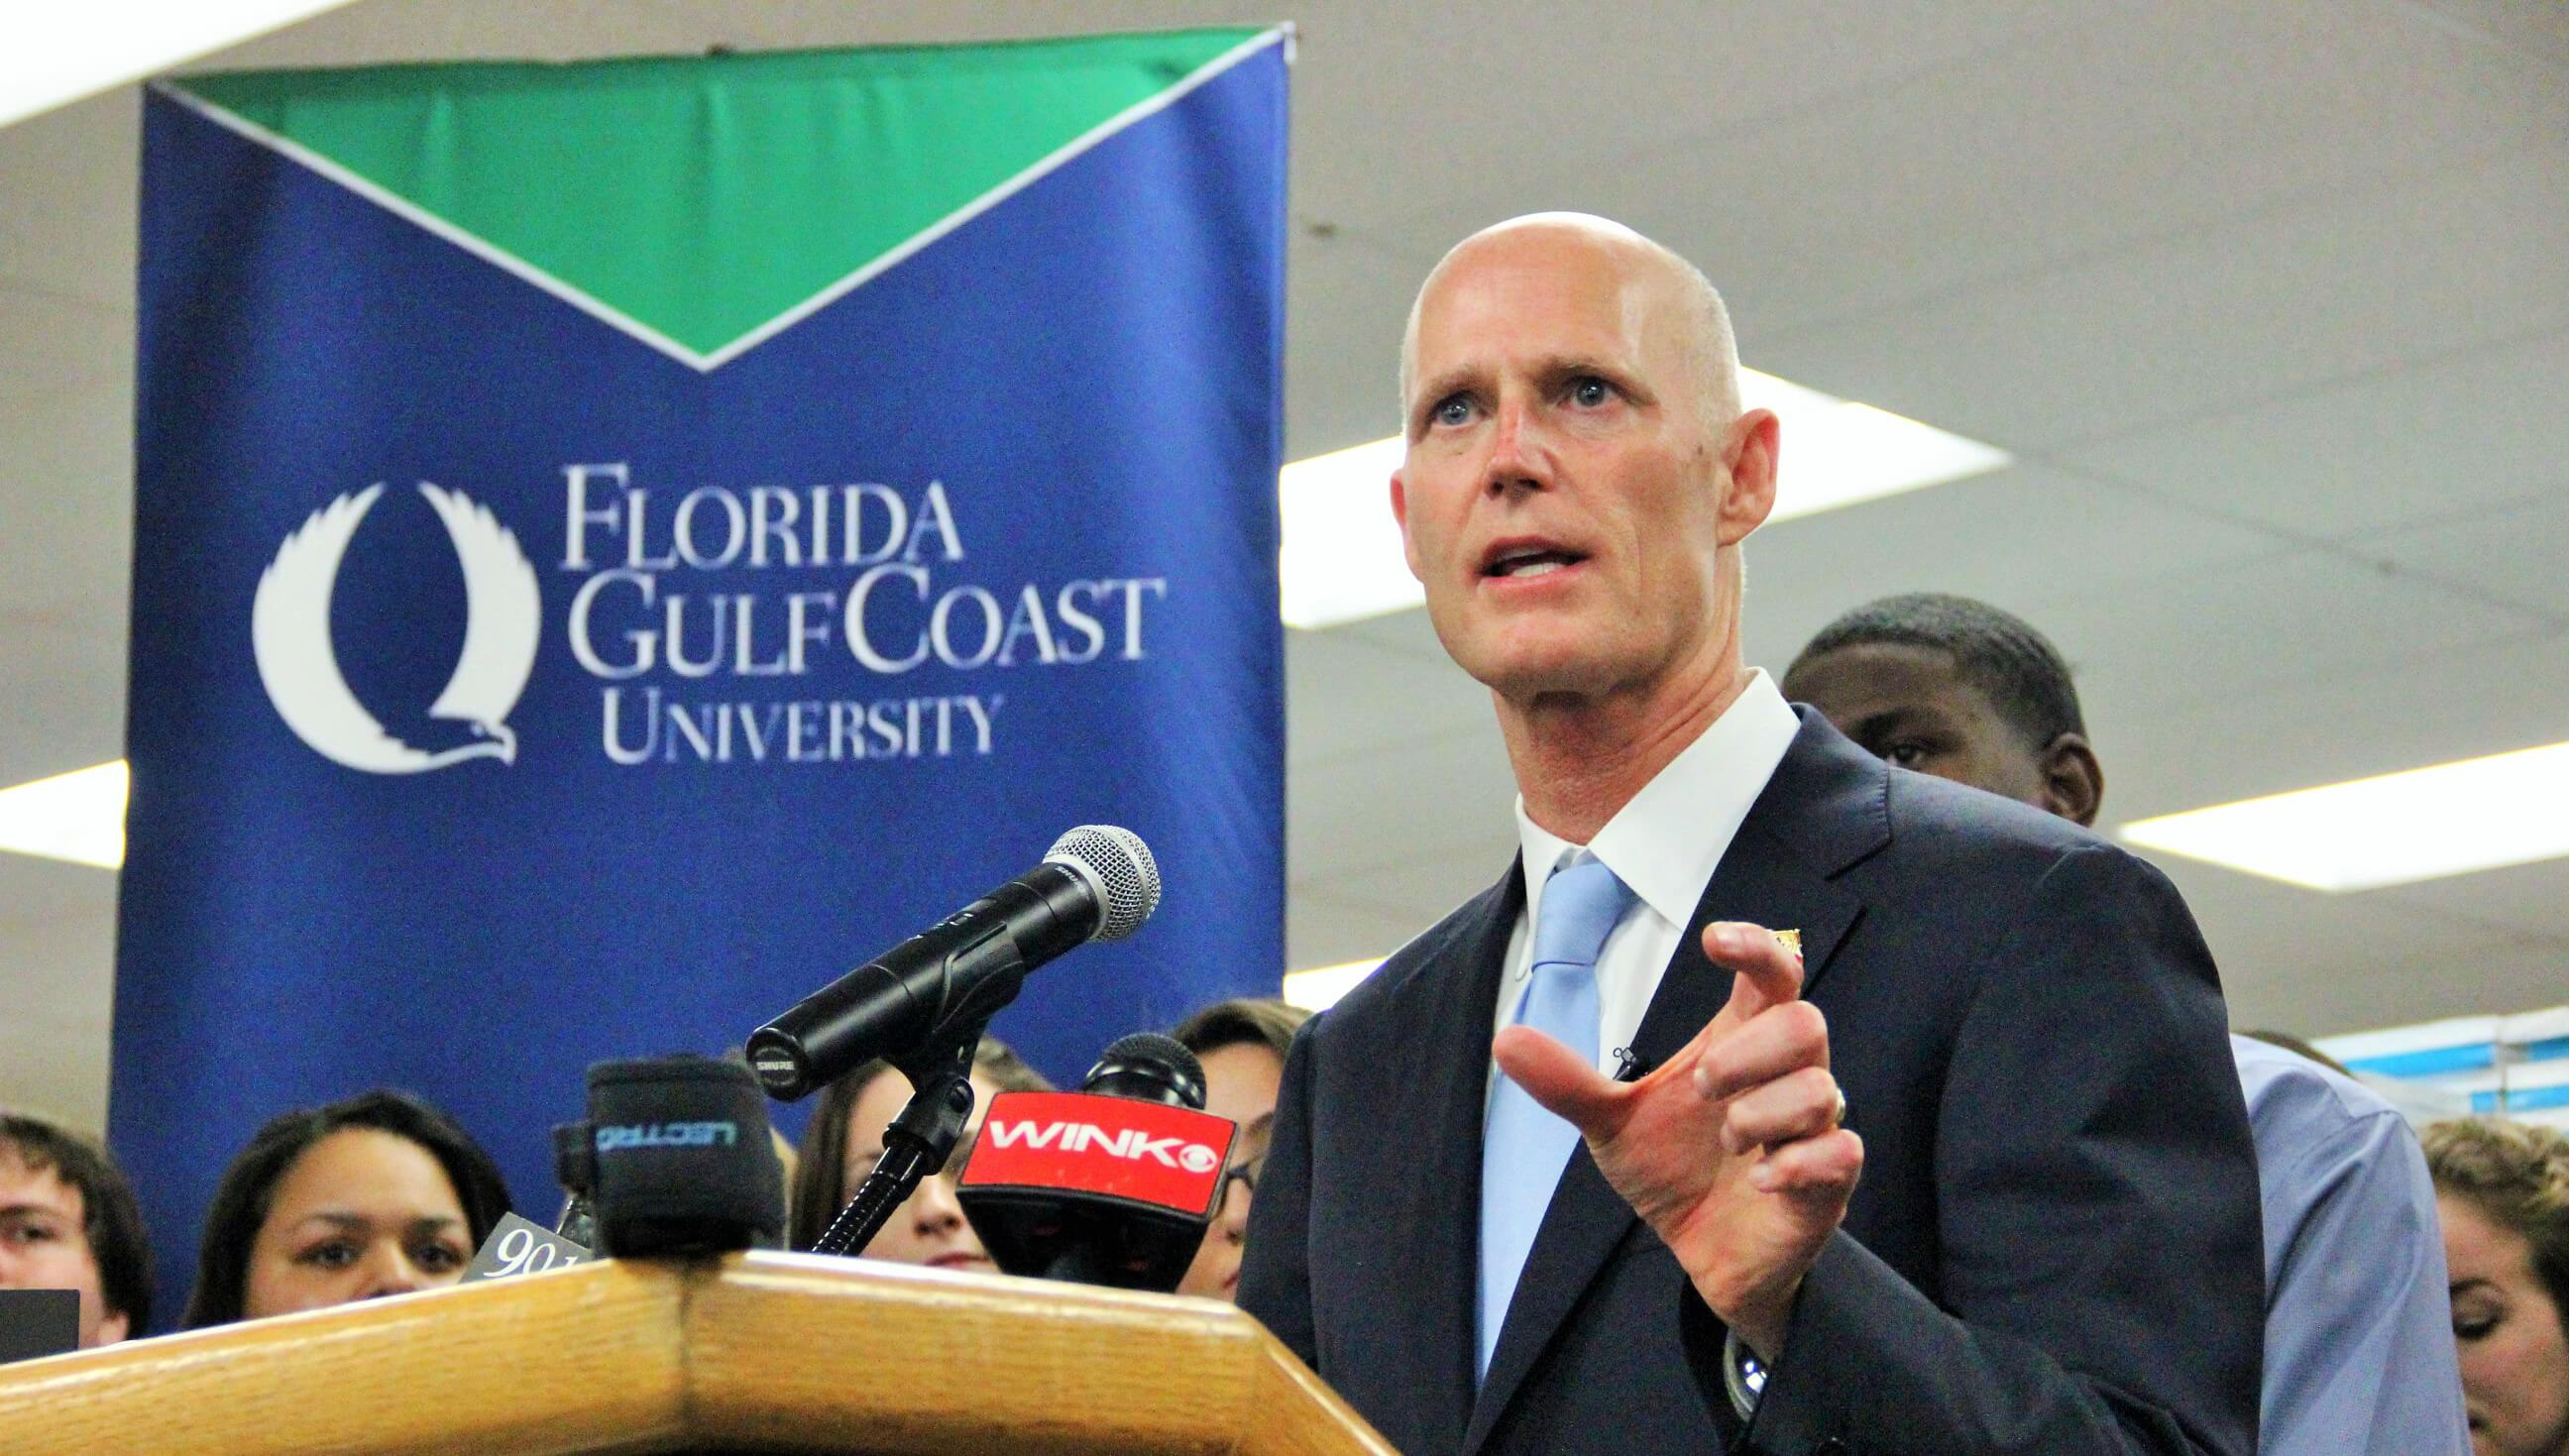 FGCU grads could earn back freshman year tuition with Gov. Scott's 'Ready, Set, Work'